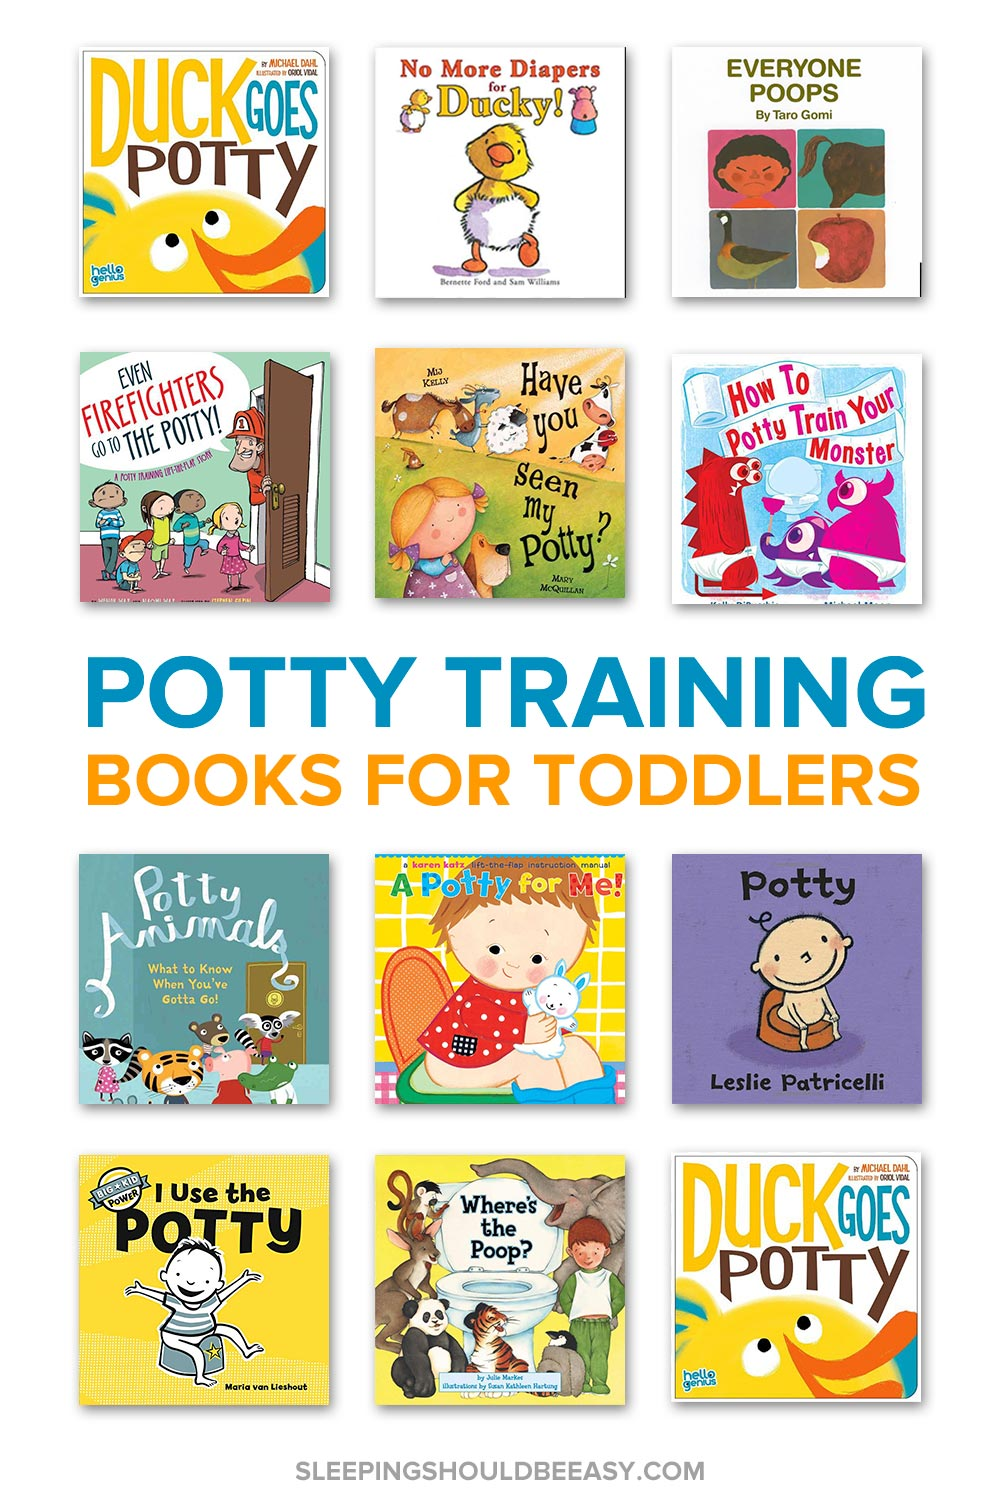 A collection of potty training books for toddlers